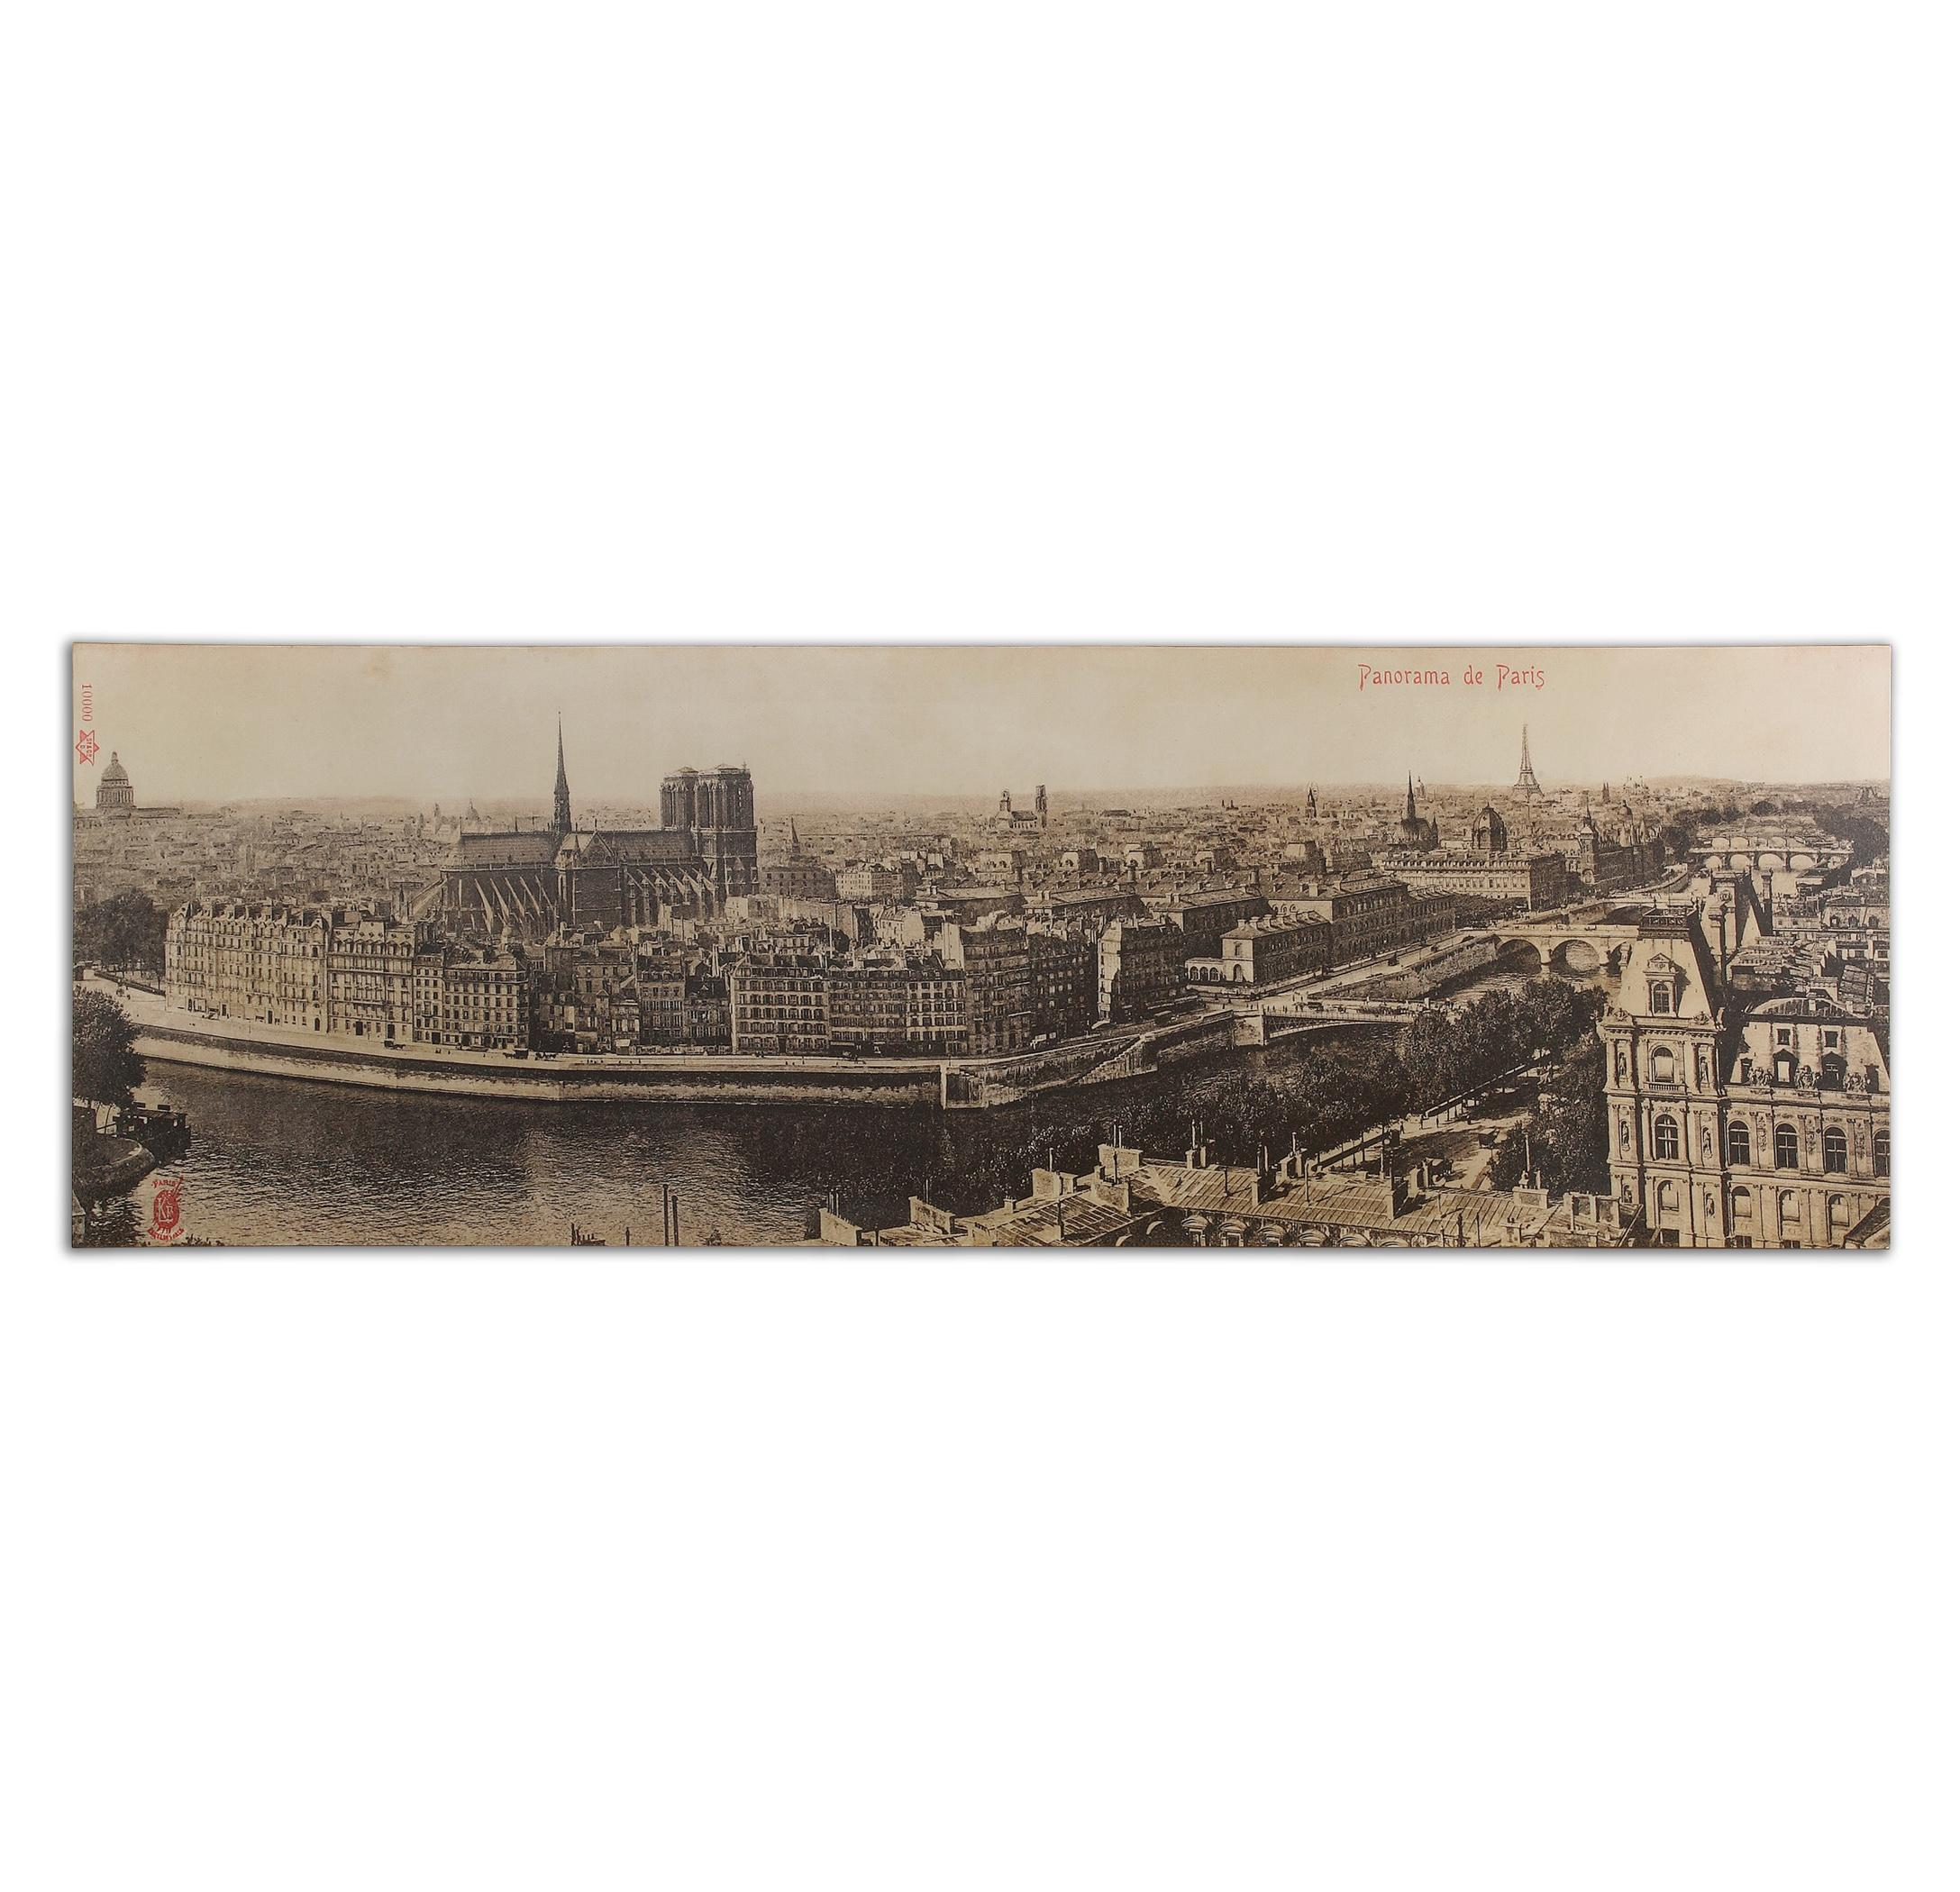 Uttermost Art Panorama De Paris Vintage Art - Item Number: 31500